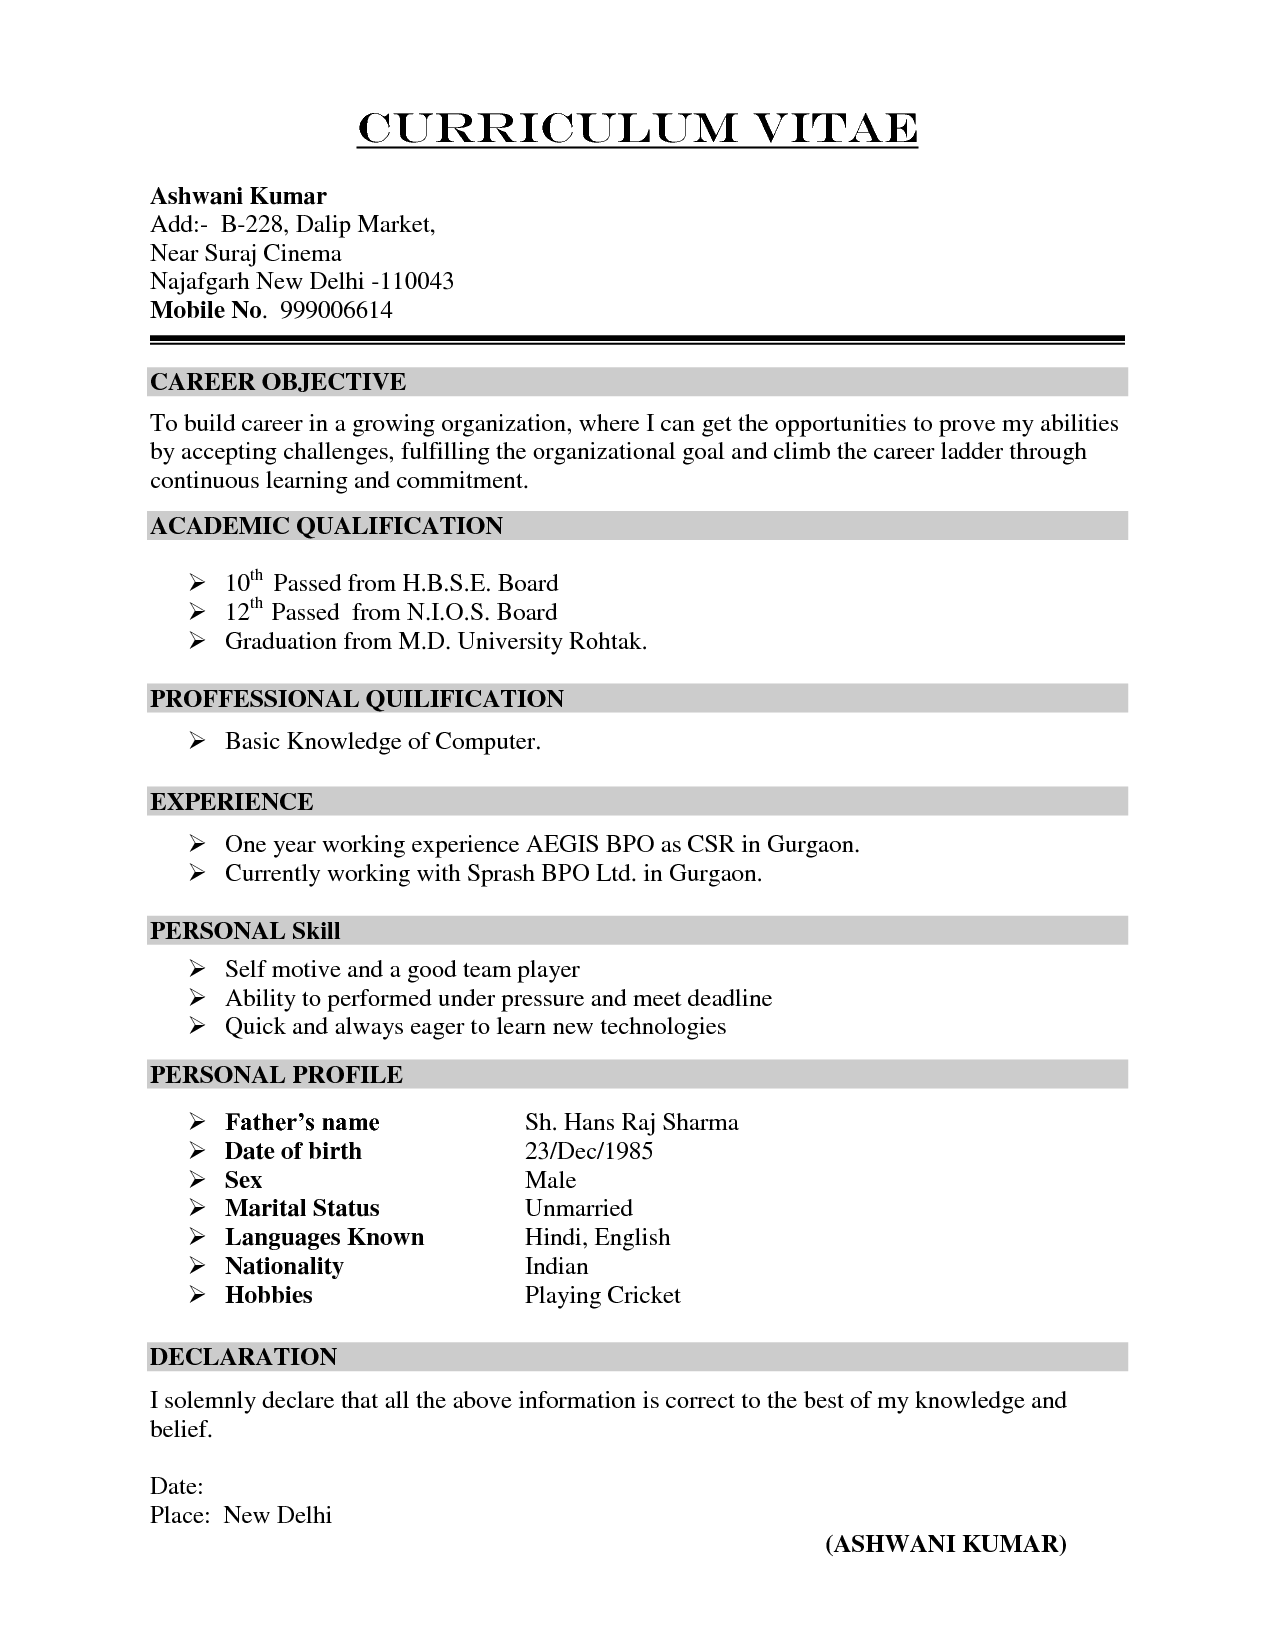 Resume For Cna Examples Format Download Pdf Beautiful Design Experience  Sample  Resume For Cna